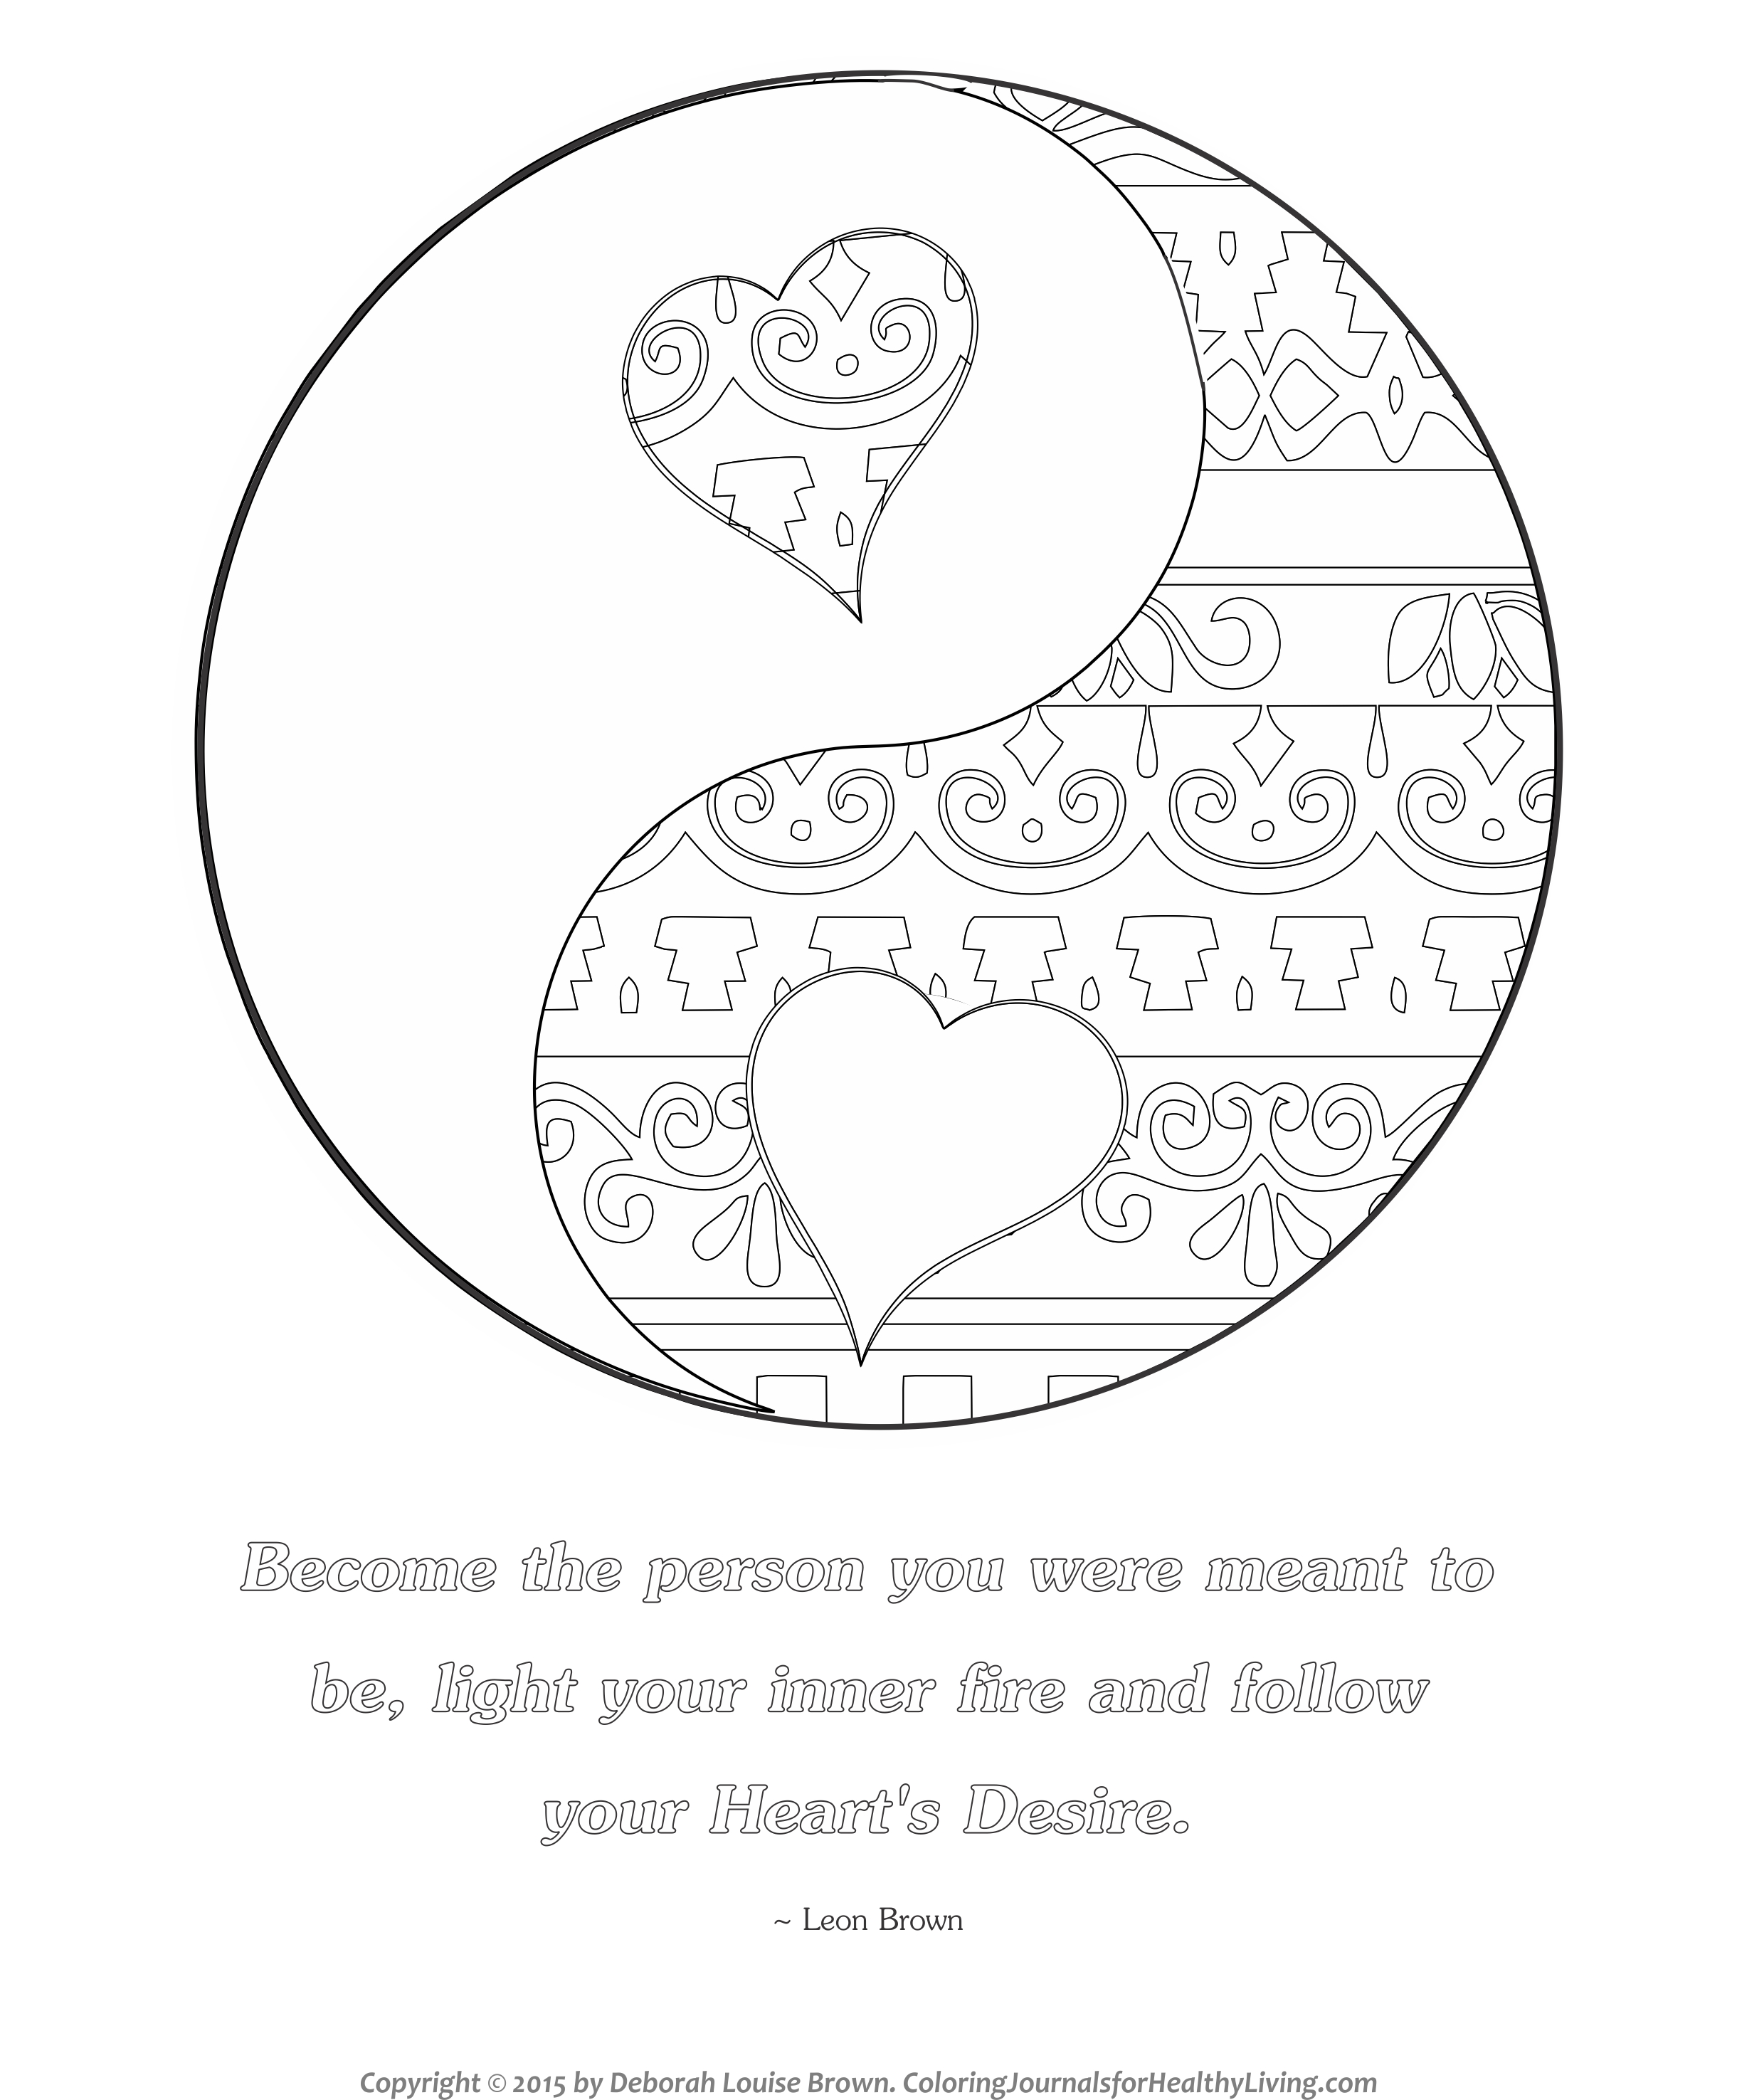 Free Coloring Pages Coloring Journals for Healthy Living